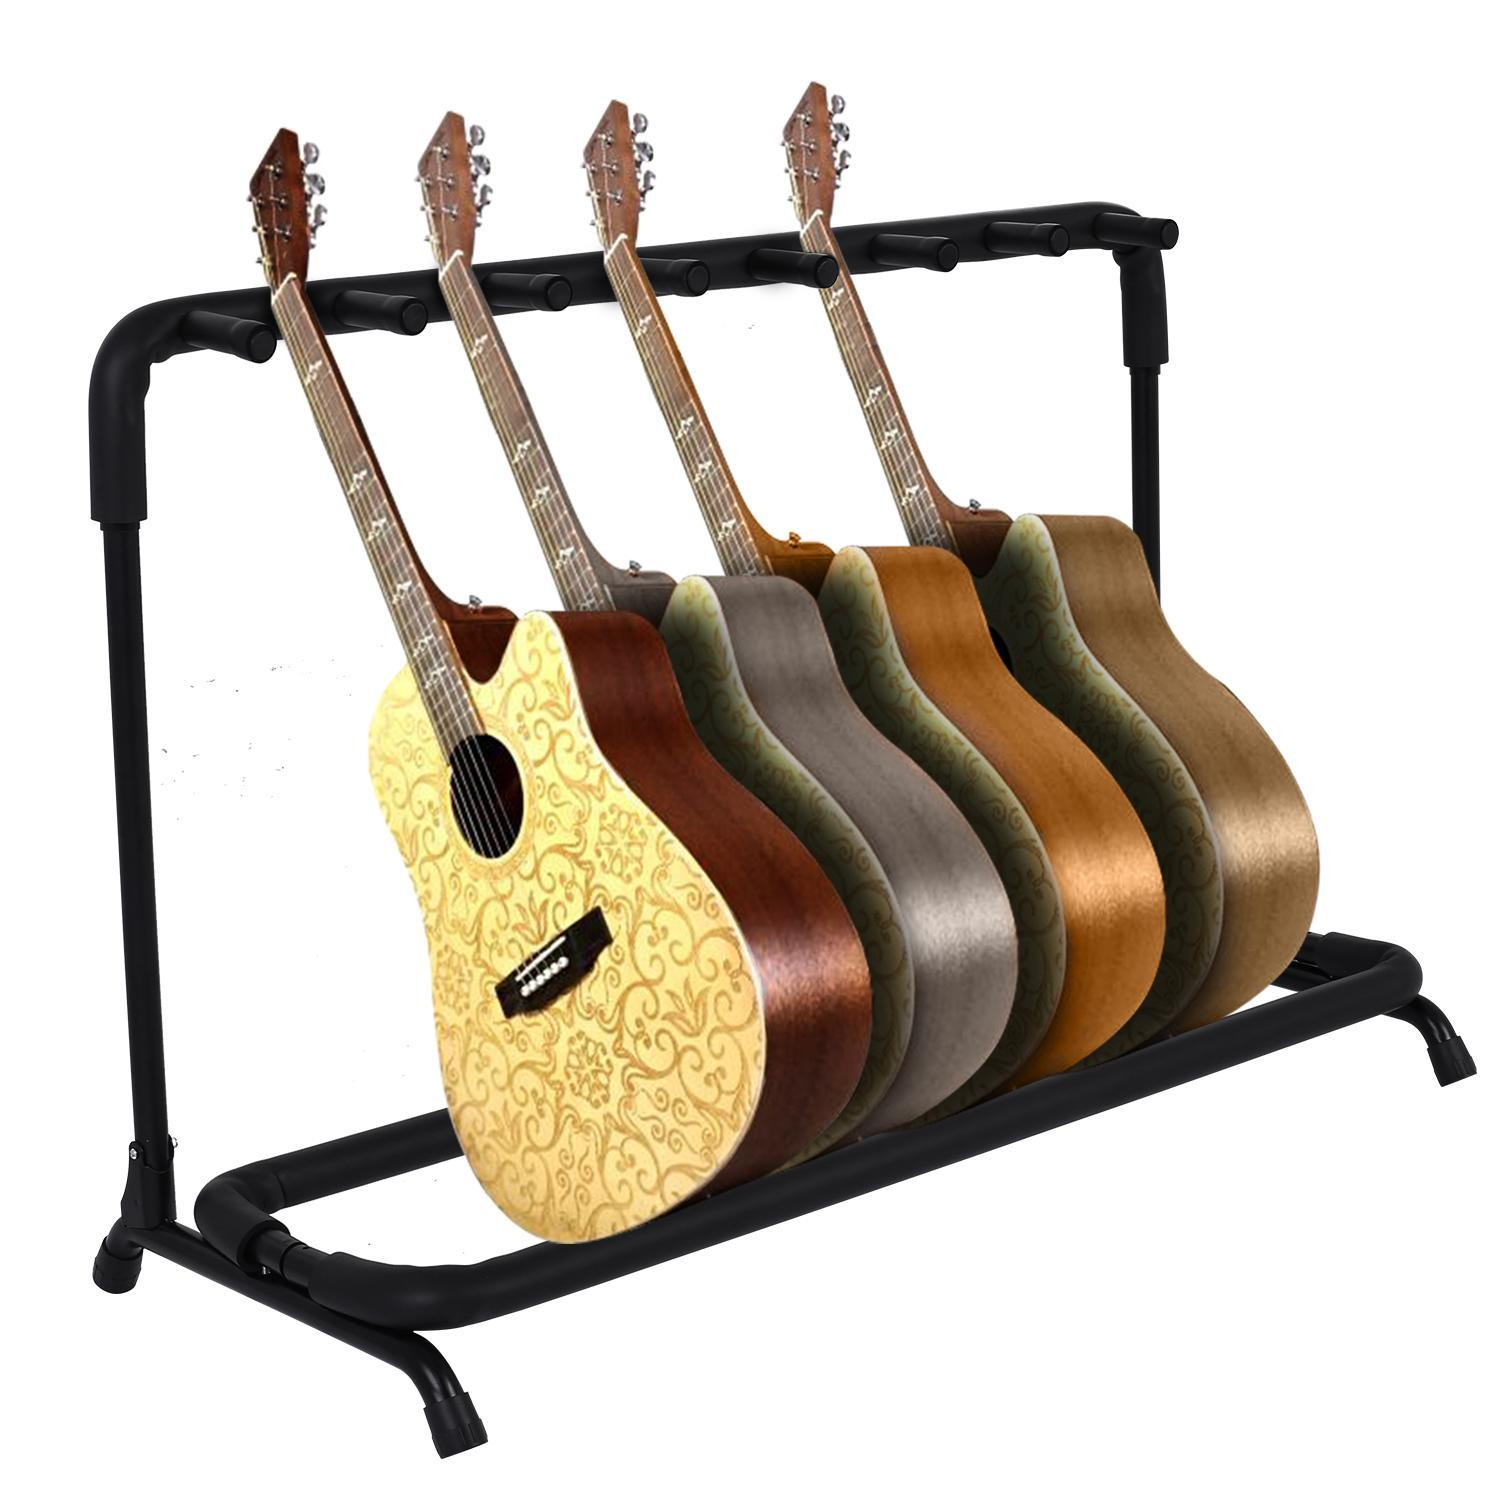 Multi Guitar Stand 7 Holder Foldable  Display Rack - Portable Black Guitar Holder With No slip Rubber Padding for Classical Acoustic, Electric,  Guitar and Guitar Bag / Case